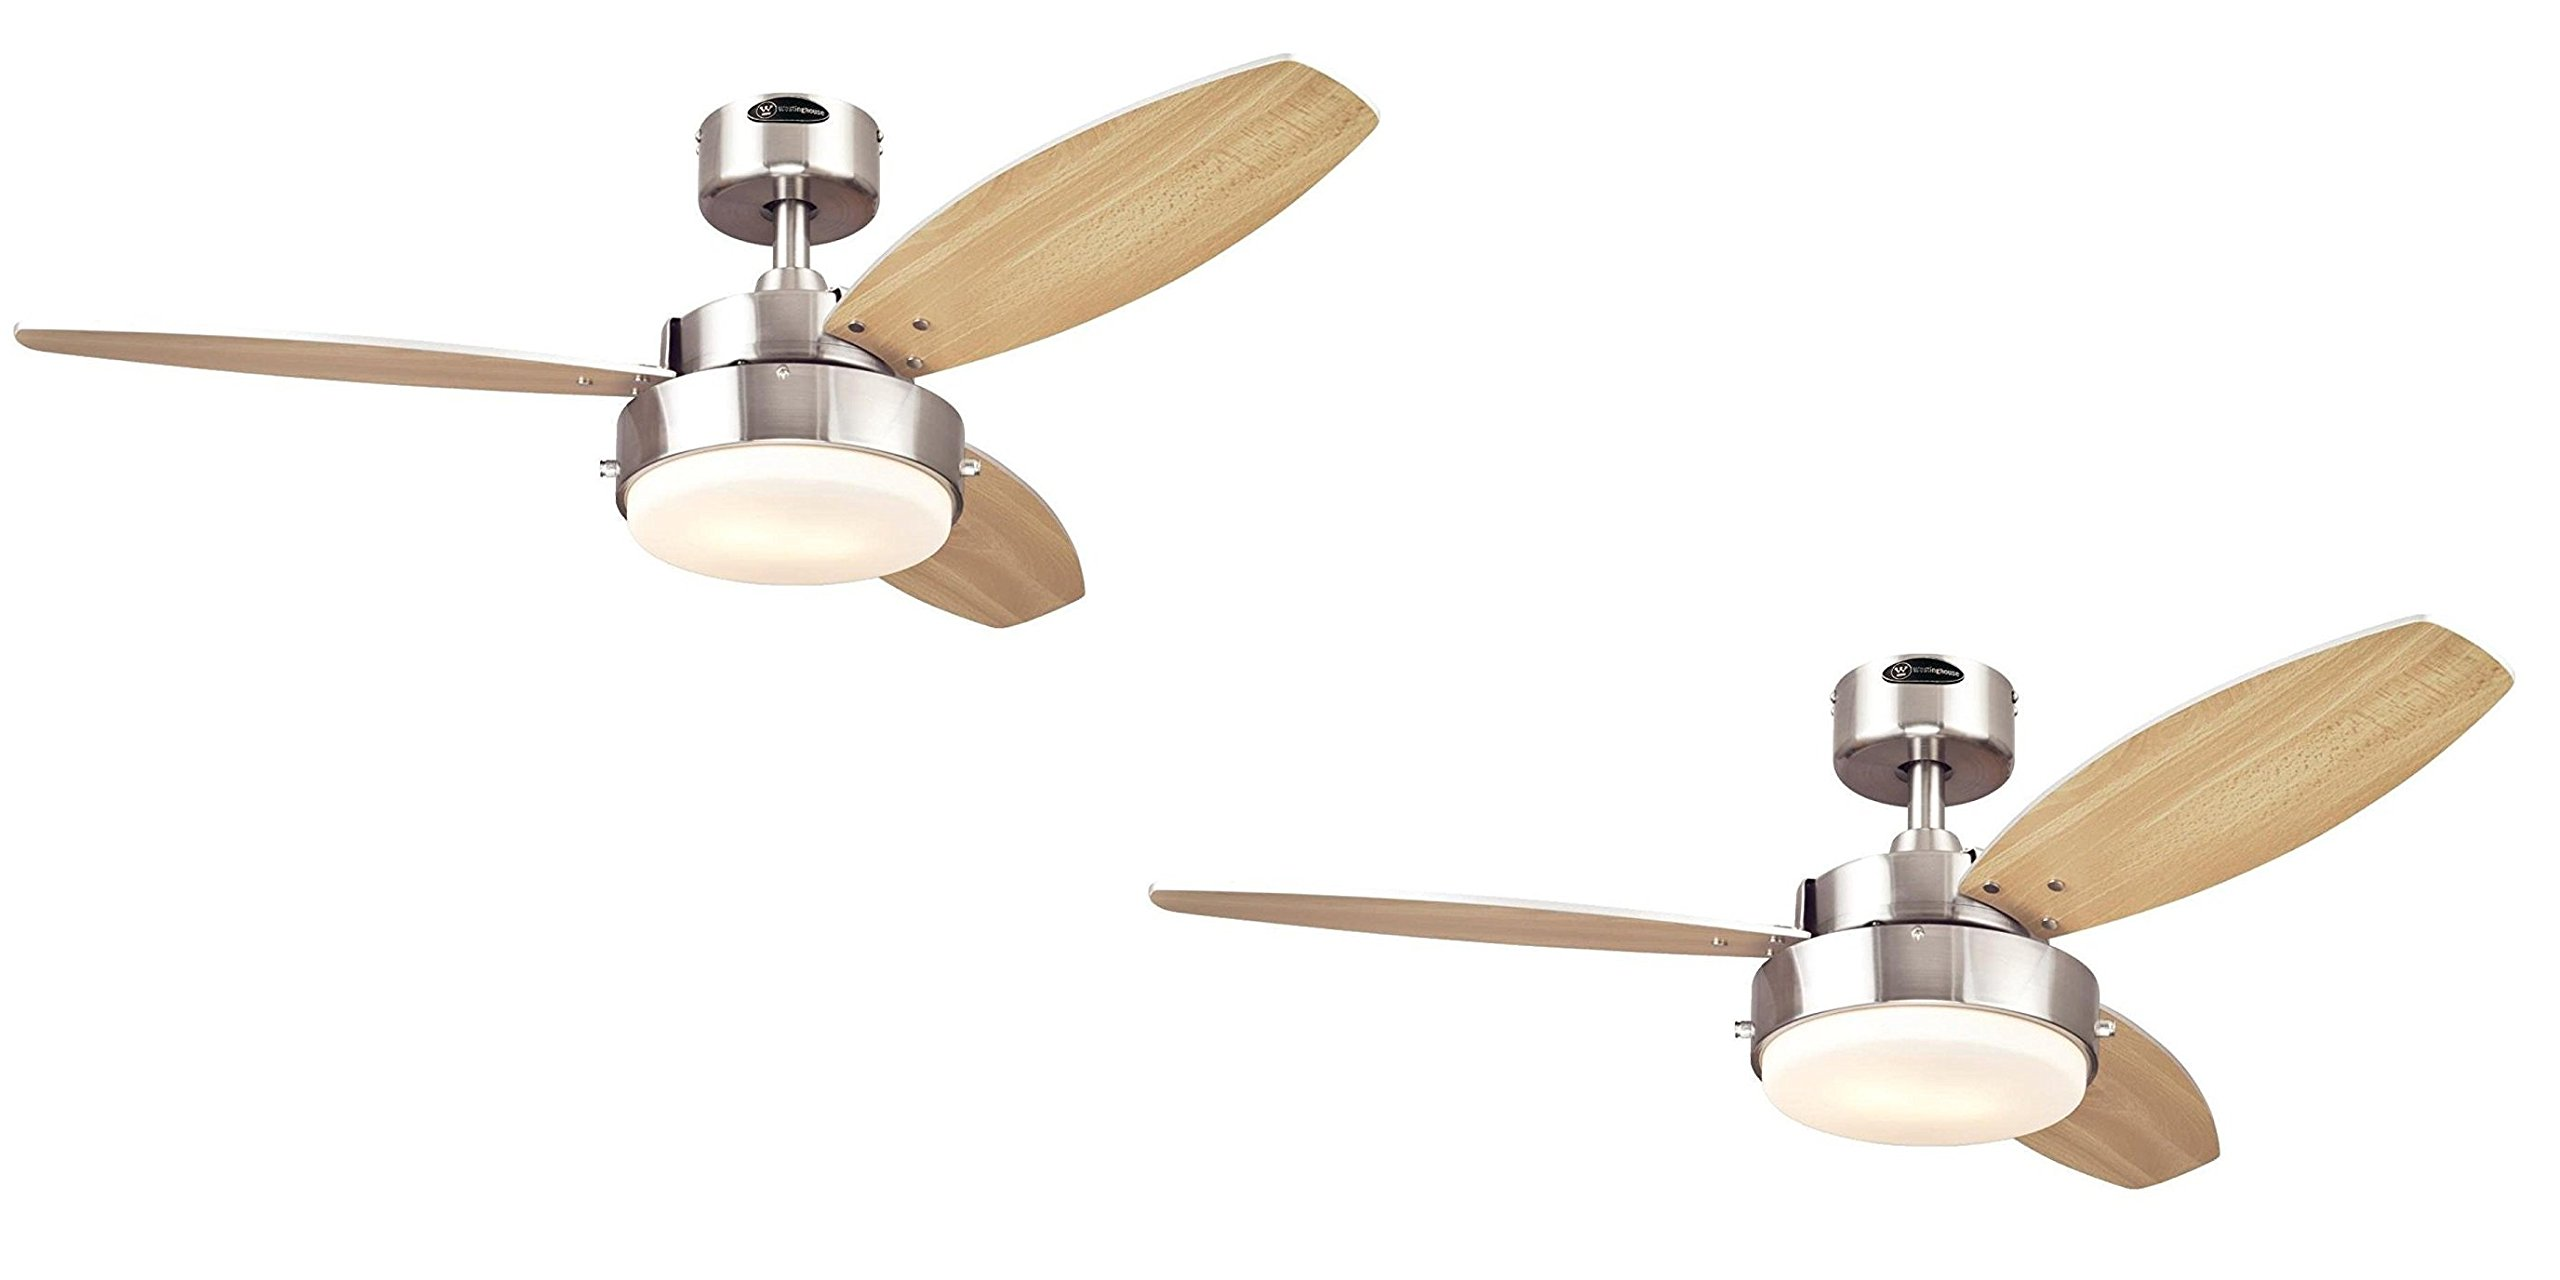 Westinghouse Alloy Two-Light Reversible Three-Blade Indoor Ceiling Fan, 42-Inch, Brushed Nickel Finish with Opal Frosted Glass 2 Pack (42'' Brushed Nickel 2 Pack)